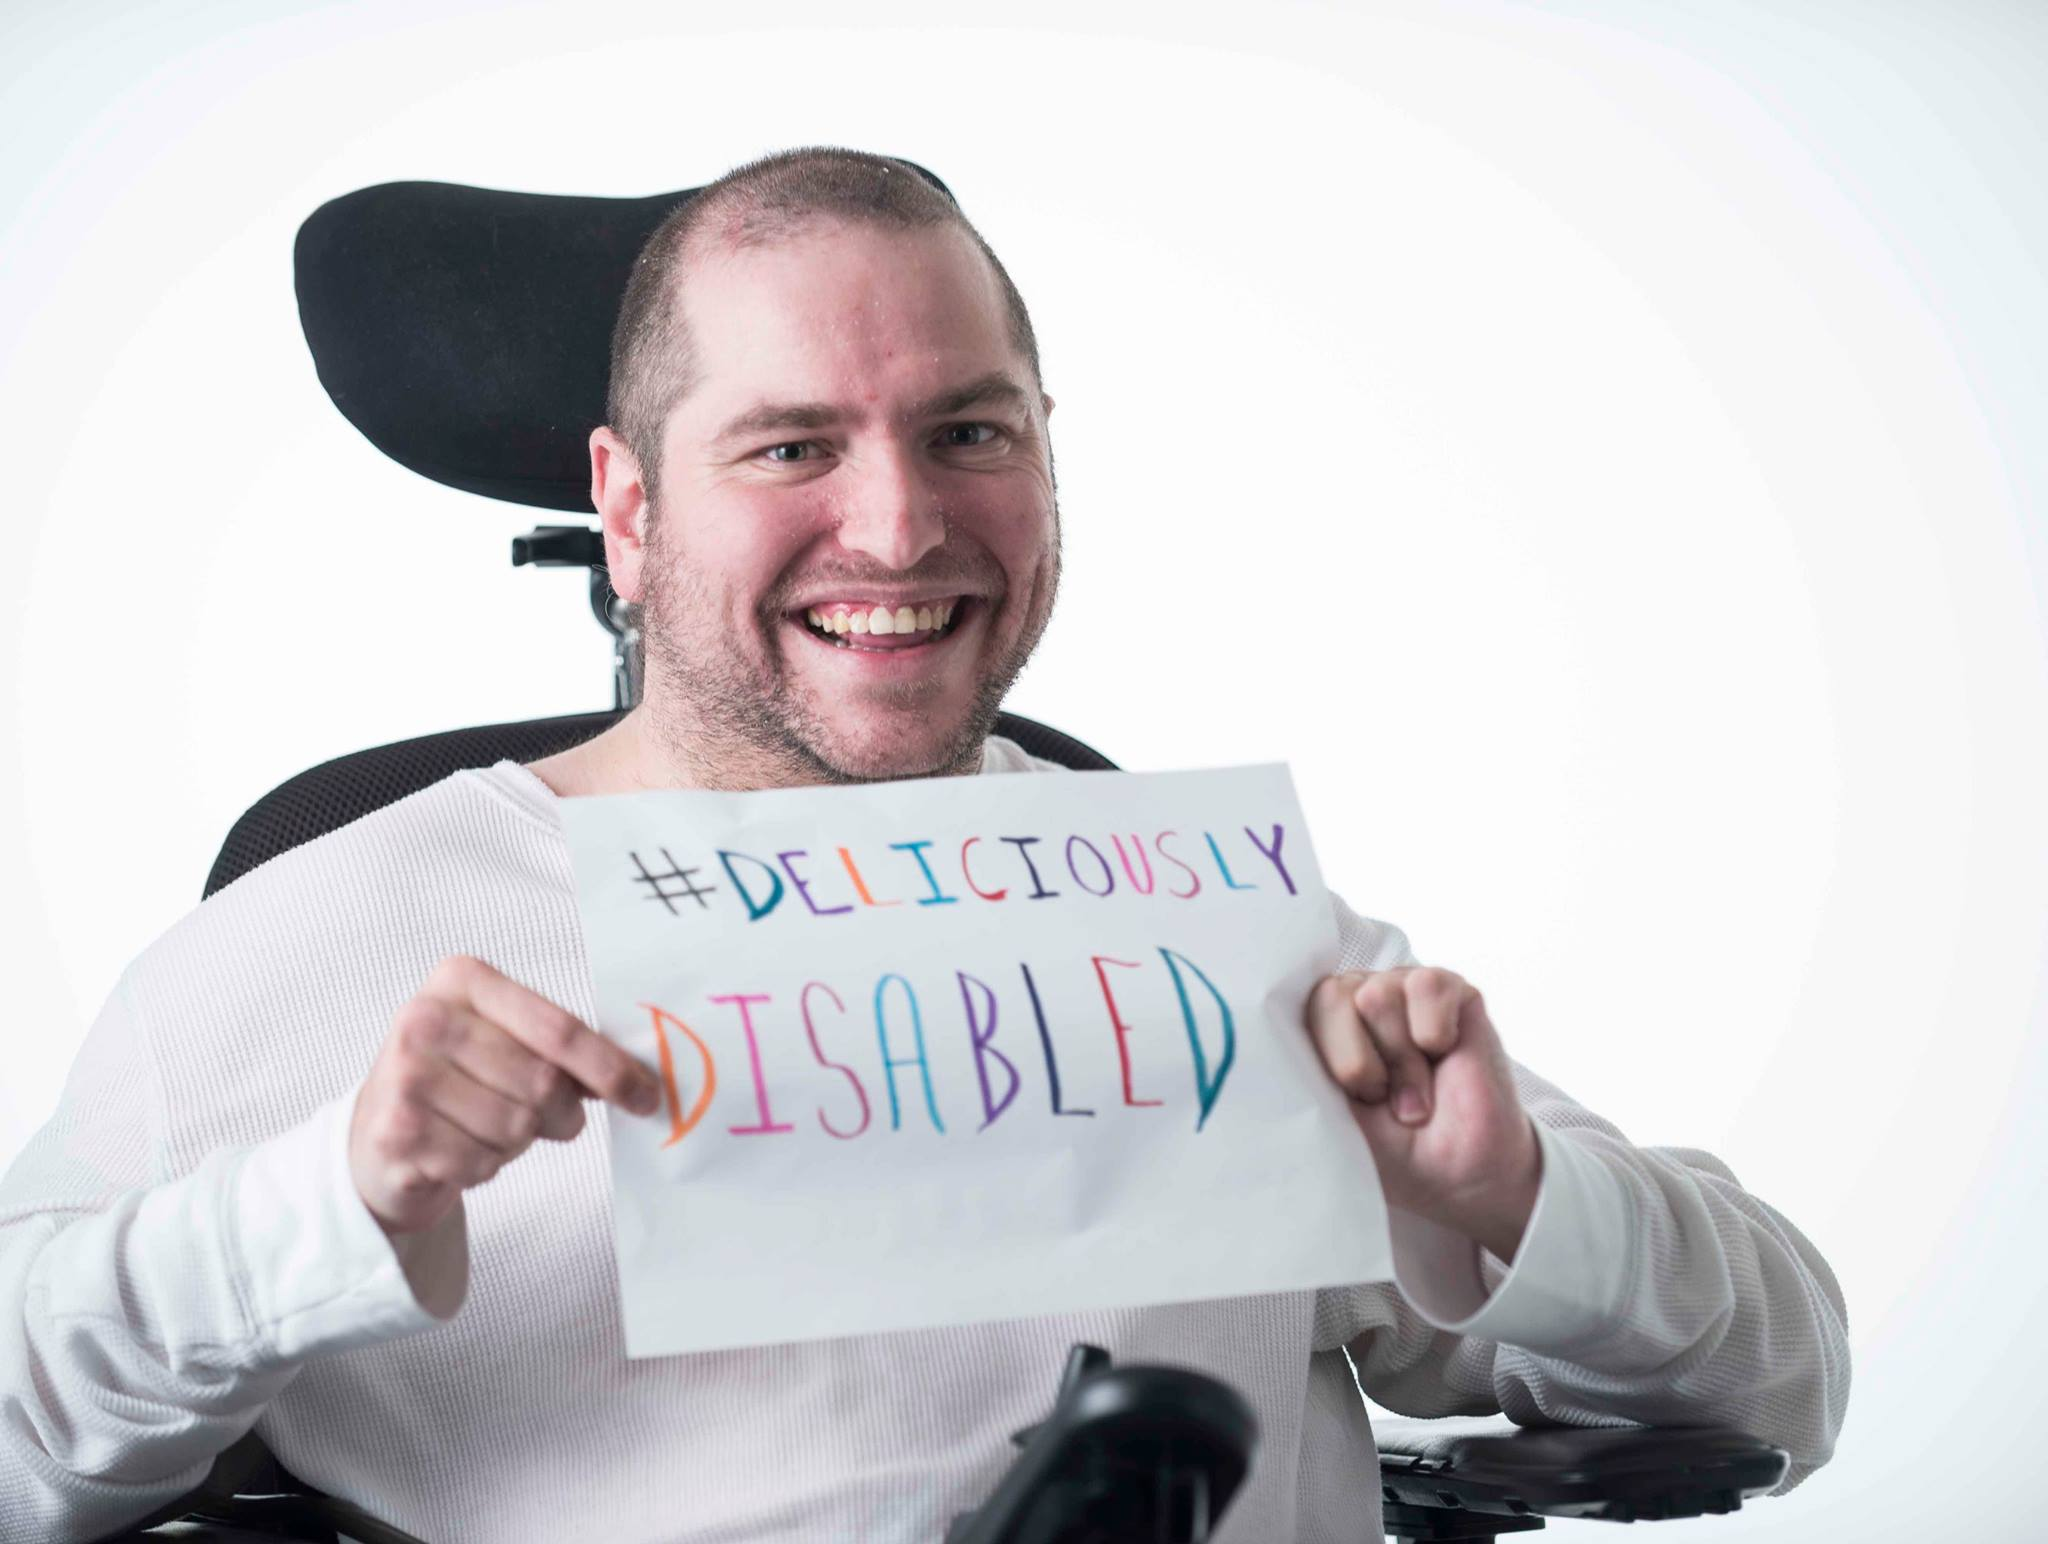 Disabled person dating service